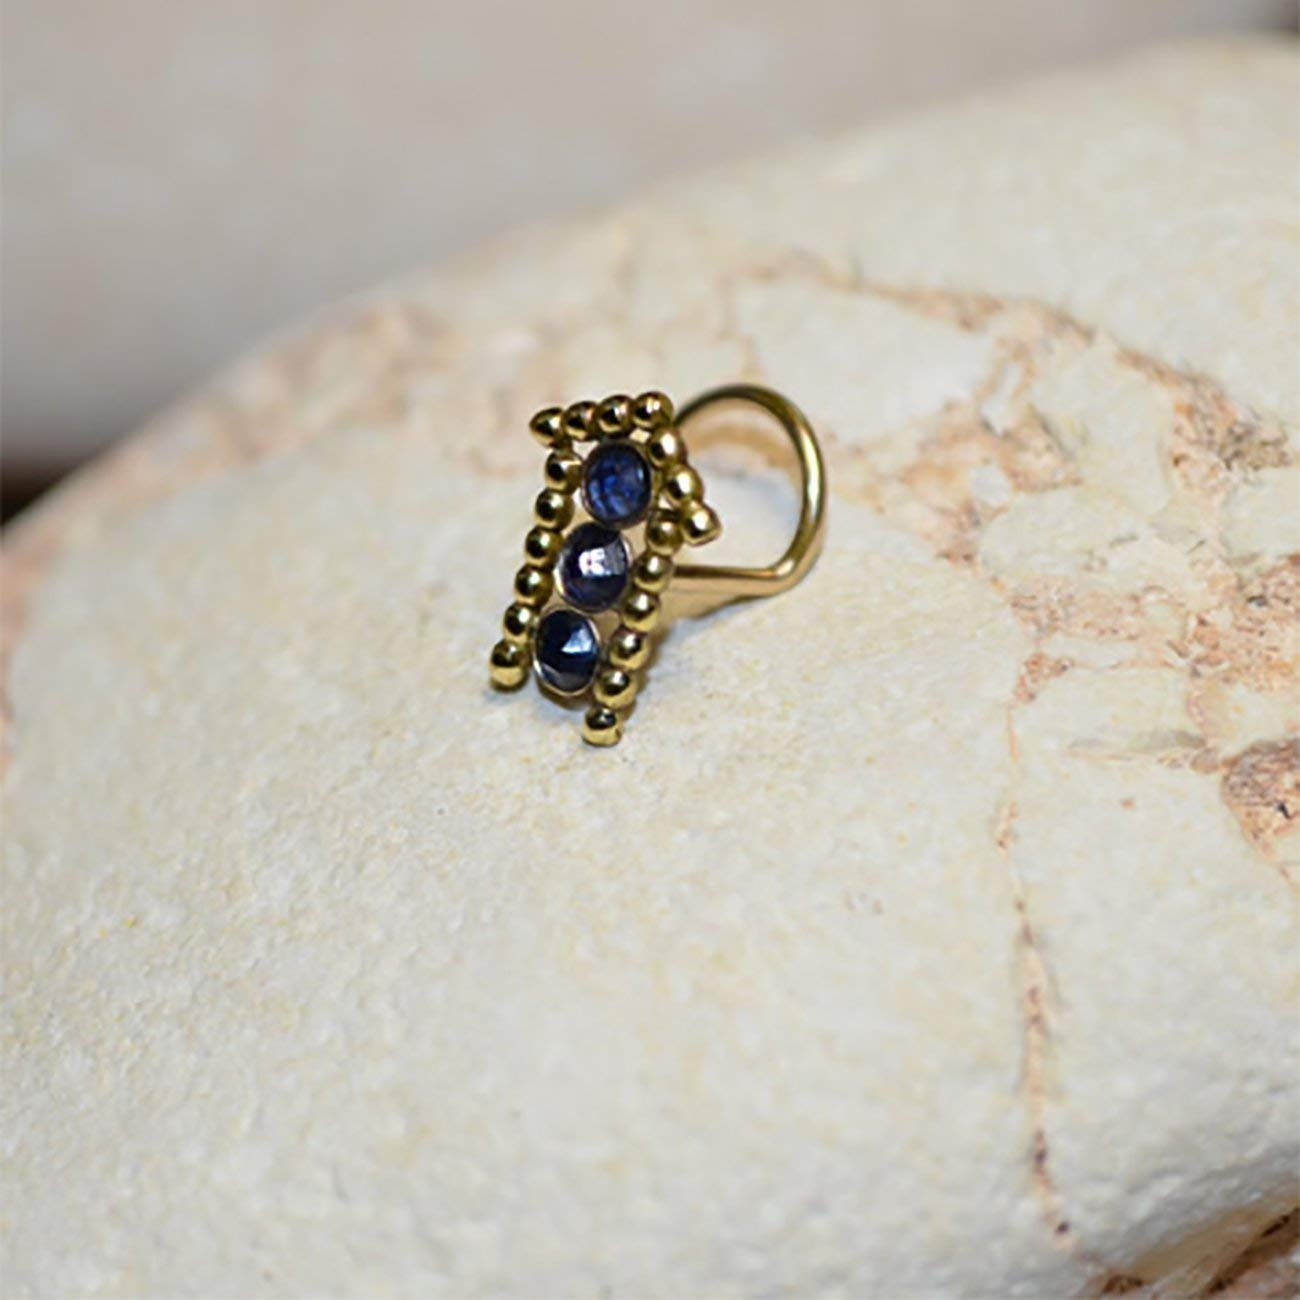 Buy 2mm Sapphire Tragus Stud Gold Nose Stud Tragus Earring Stud